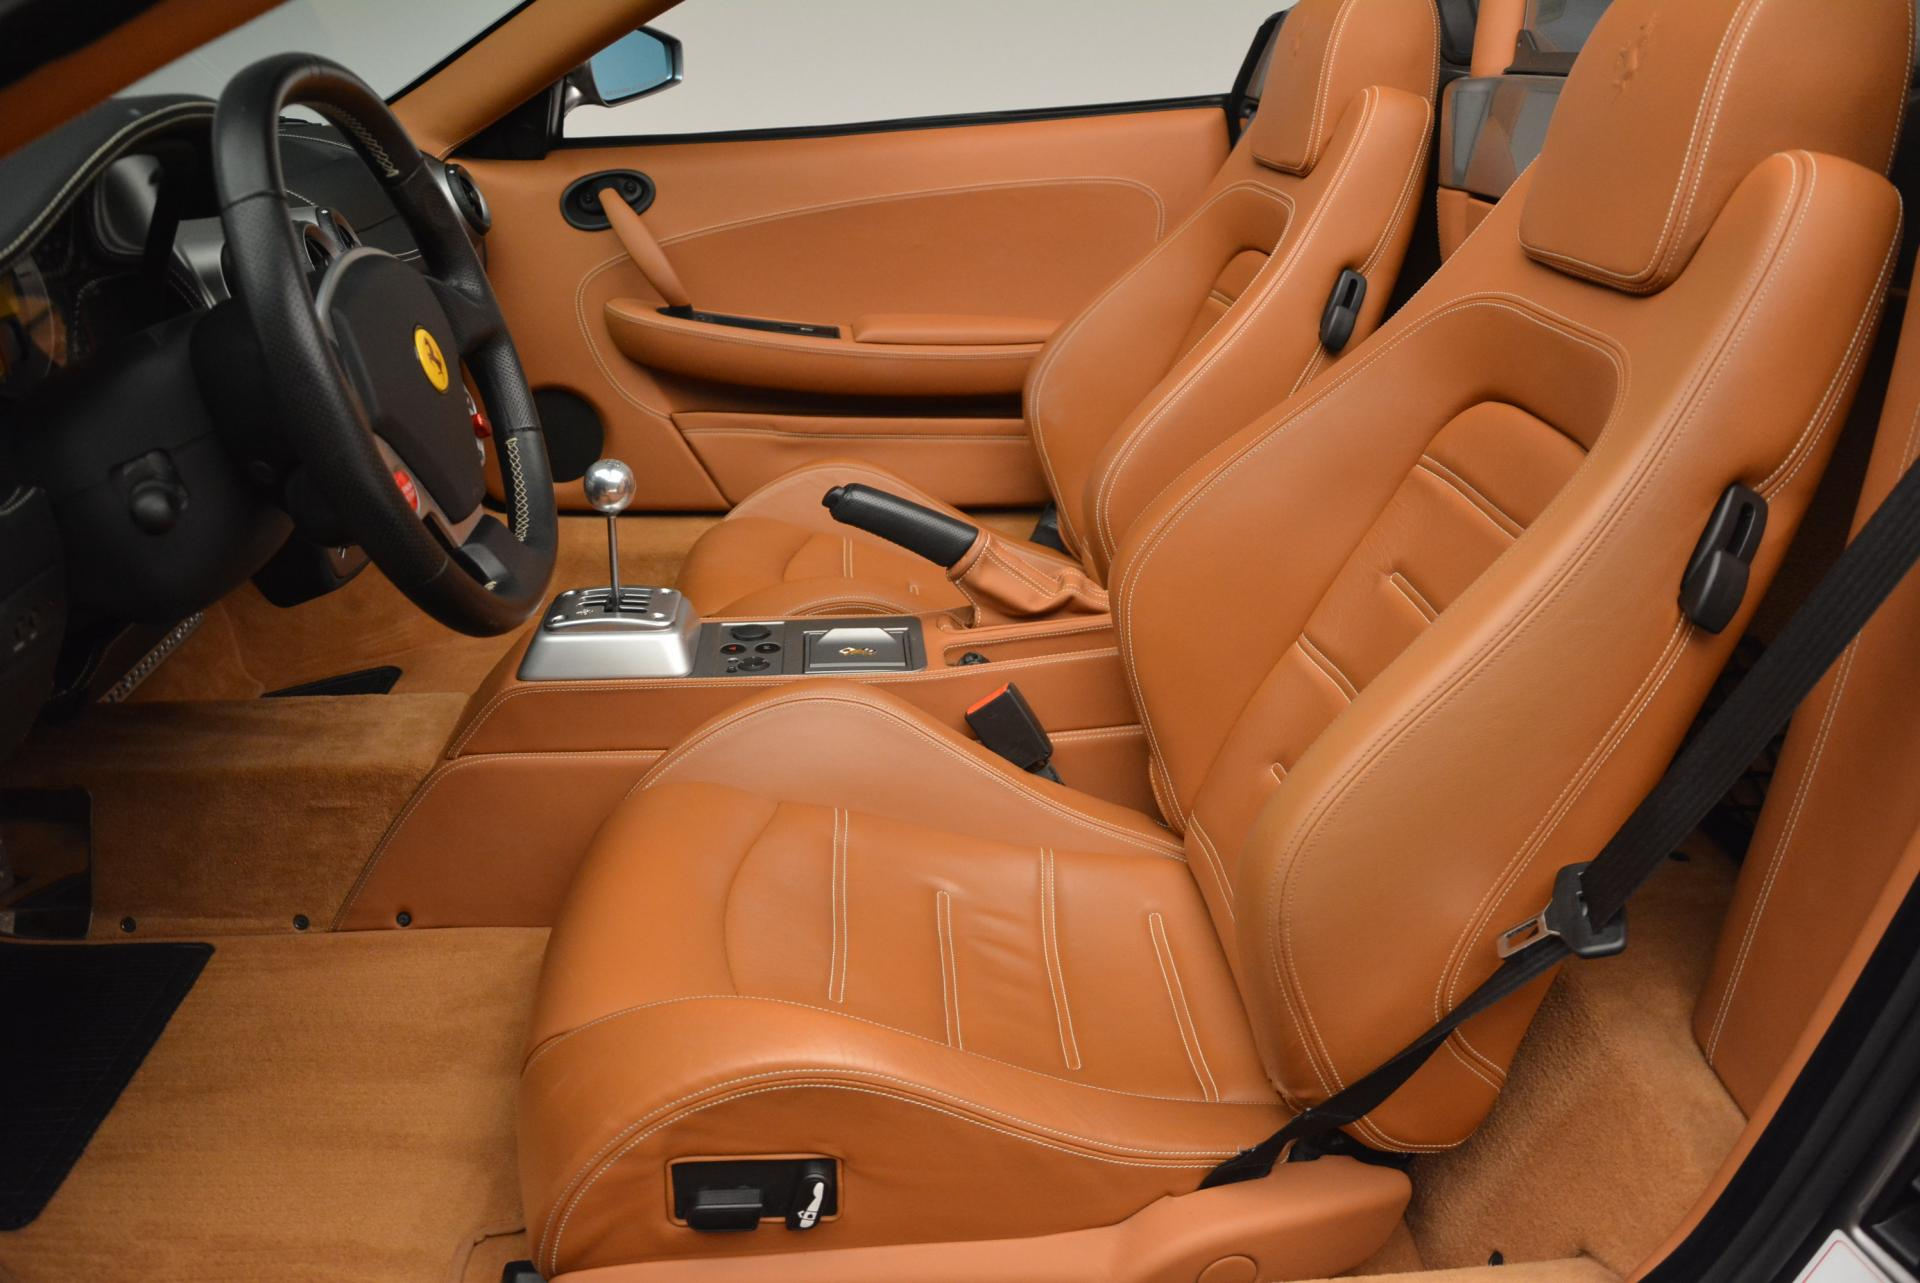 Used 2005 Ferrari F430 Spider 6-Speed Manual For Sale In Greenwich, CT 135_p26